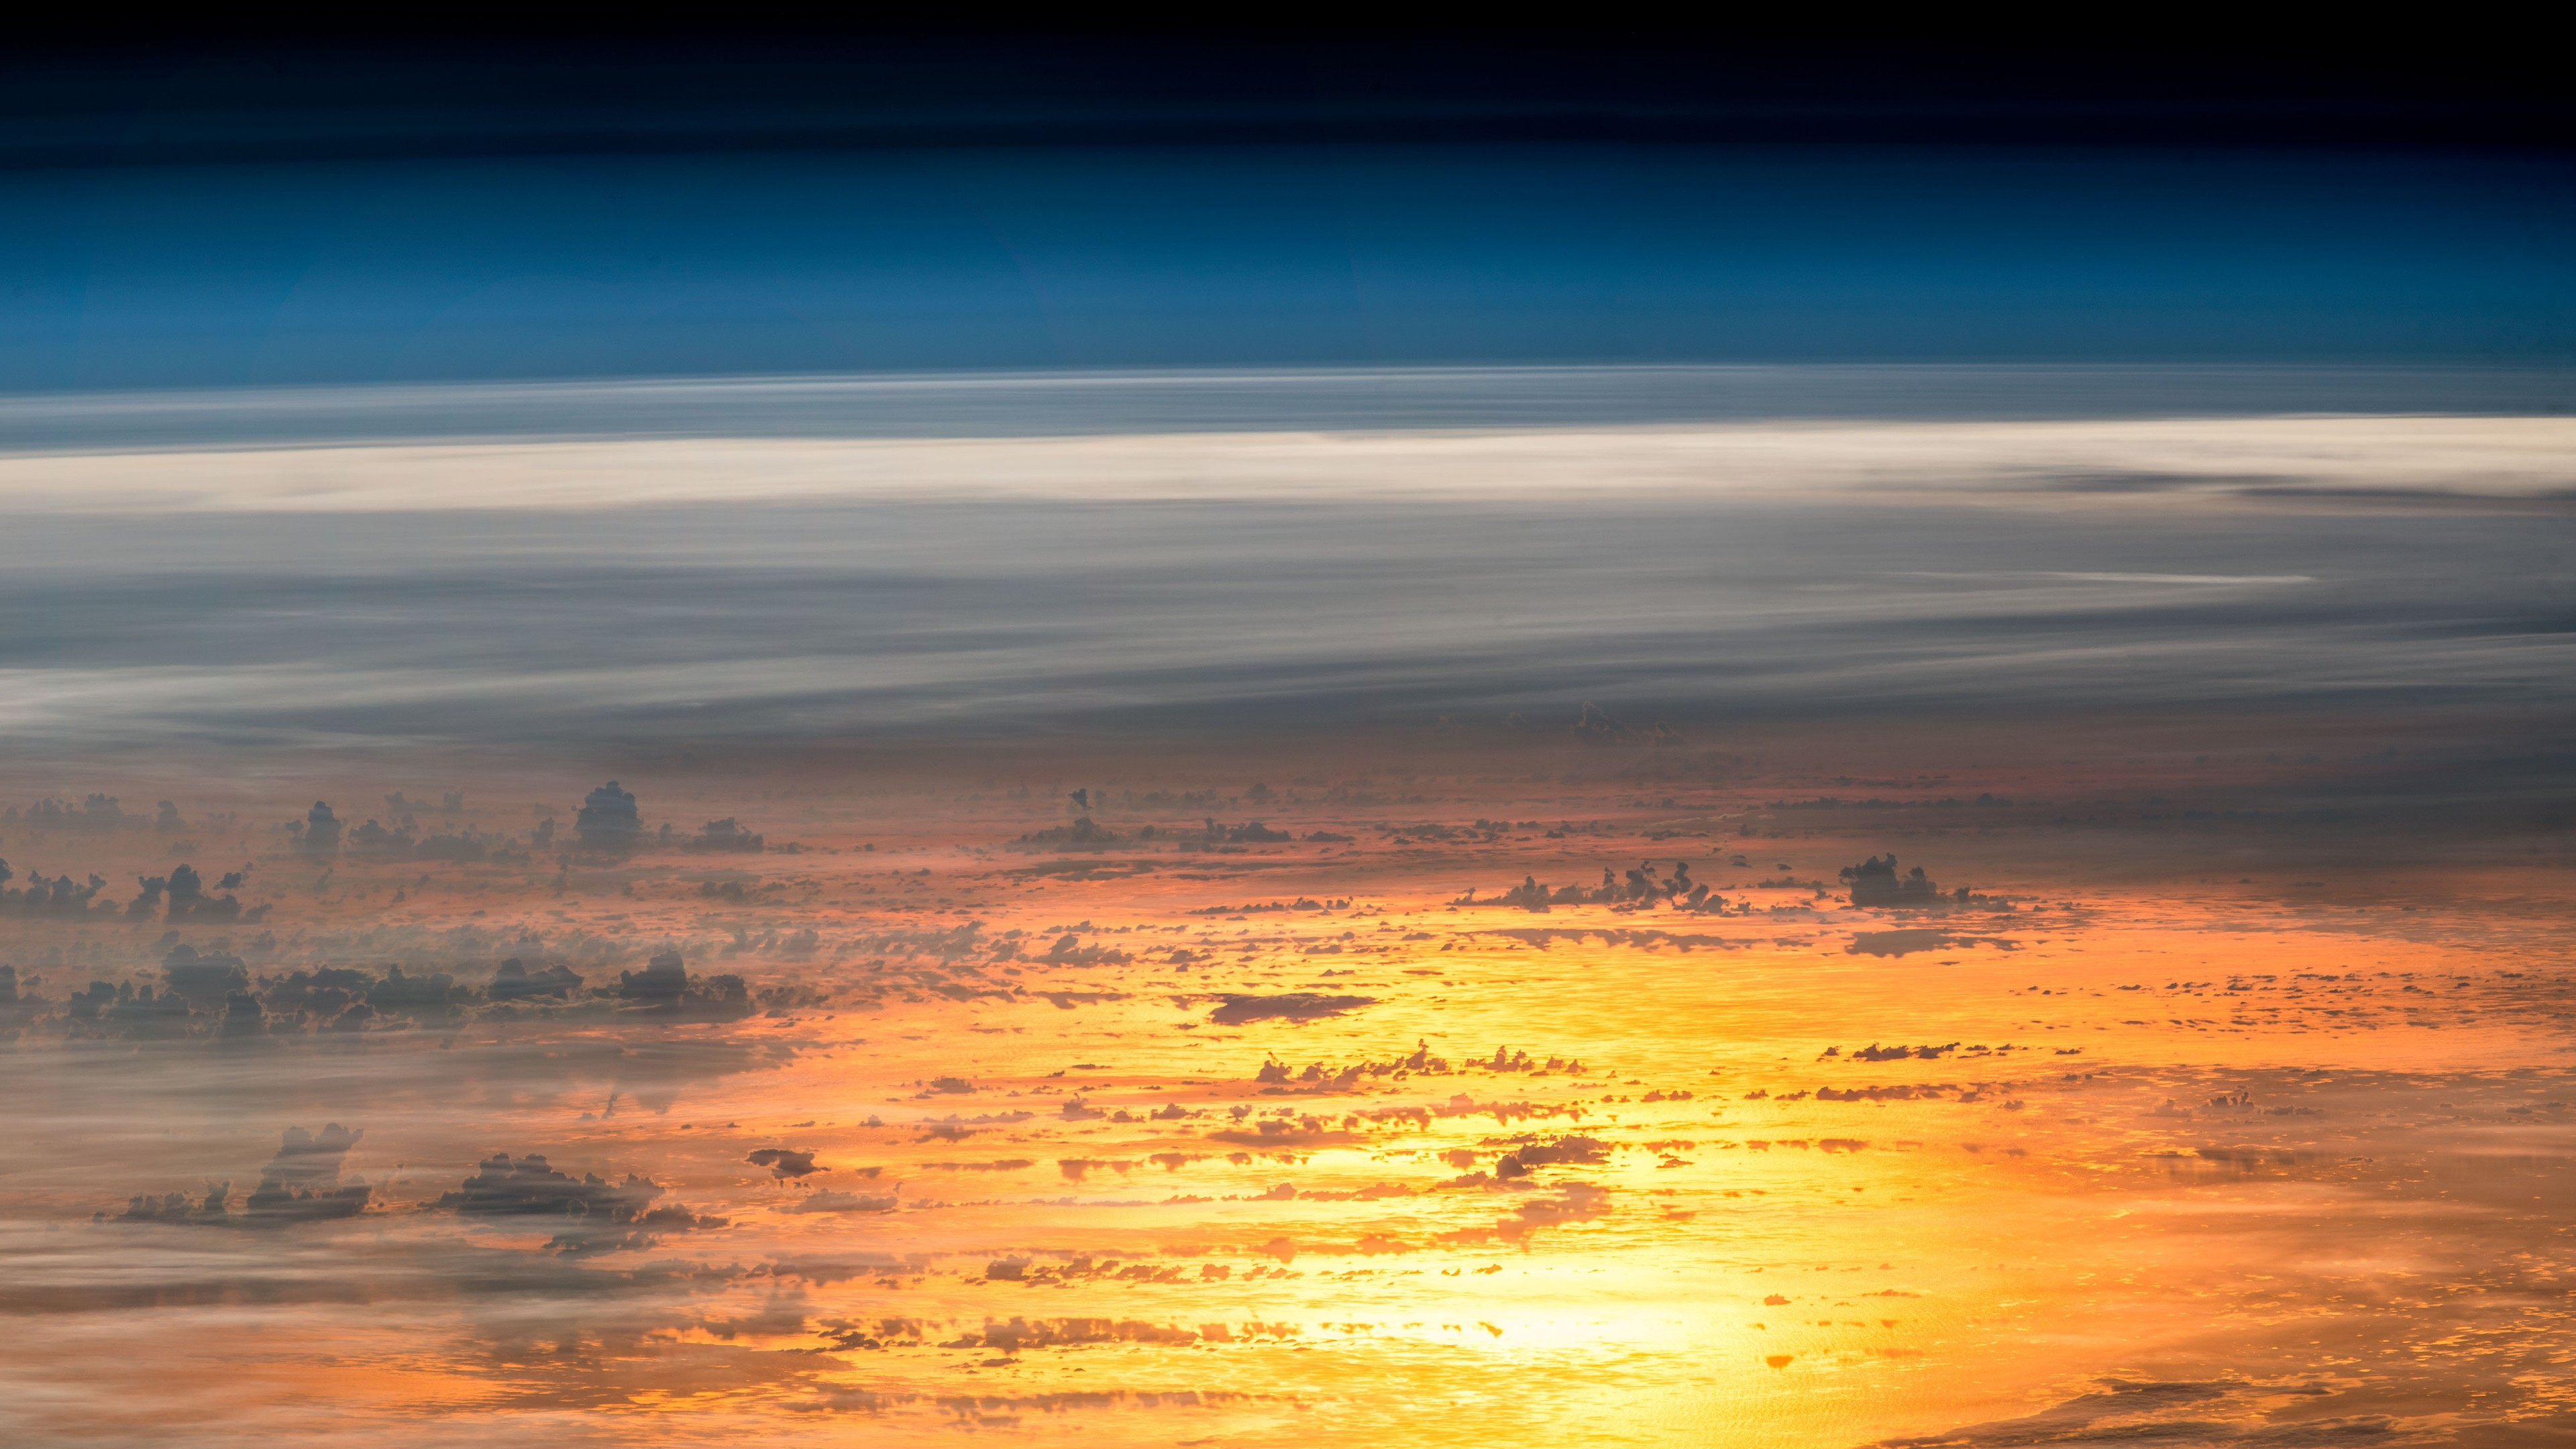 sunset from the international space station 1540140933 - Sunset From The International Space Station - space wallpapers, sky wallpapers, reflection wallpapers, nature wallpapers, horizon wallpapers, hd-wallpapers, clouds wallpapers, 5k wallpapers, 4k-wallpapers